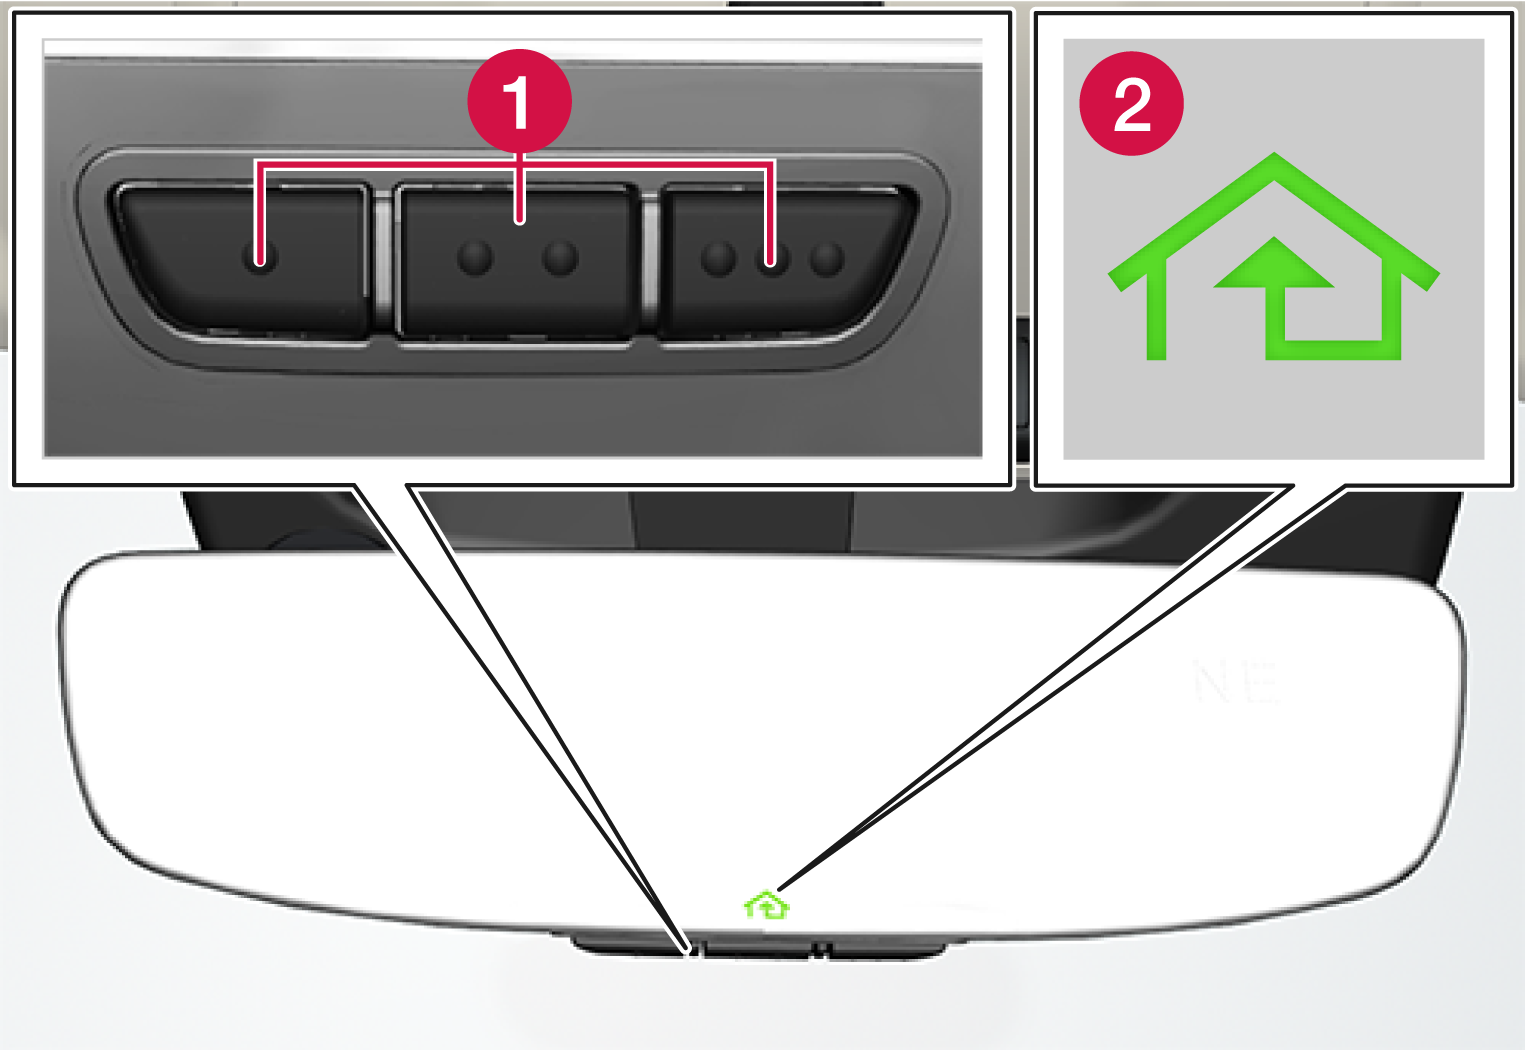 P5P6-2037-Homelink buttons in roof console and indicator in rearview mirror